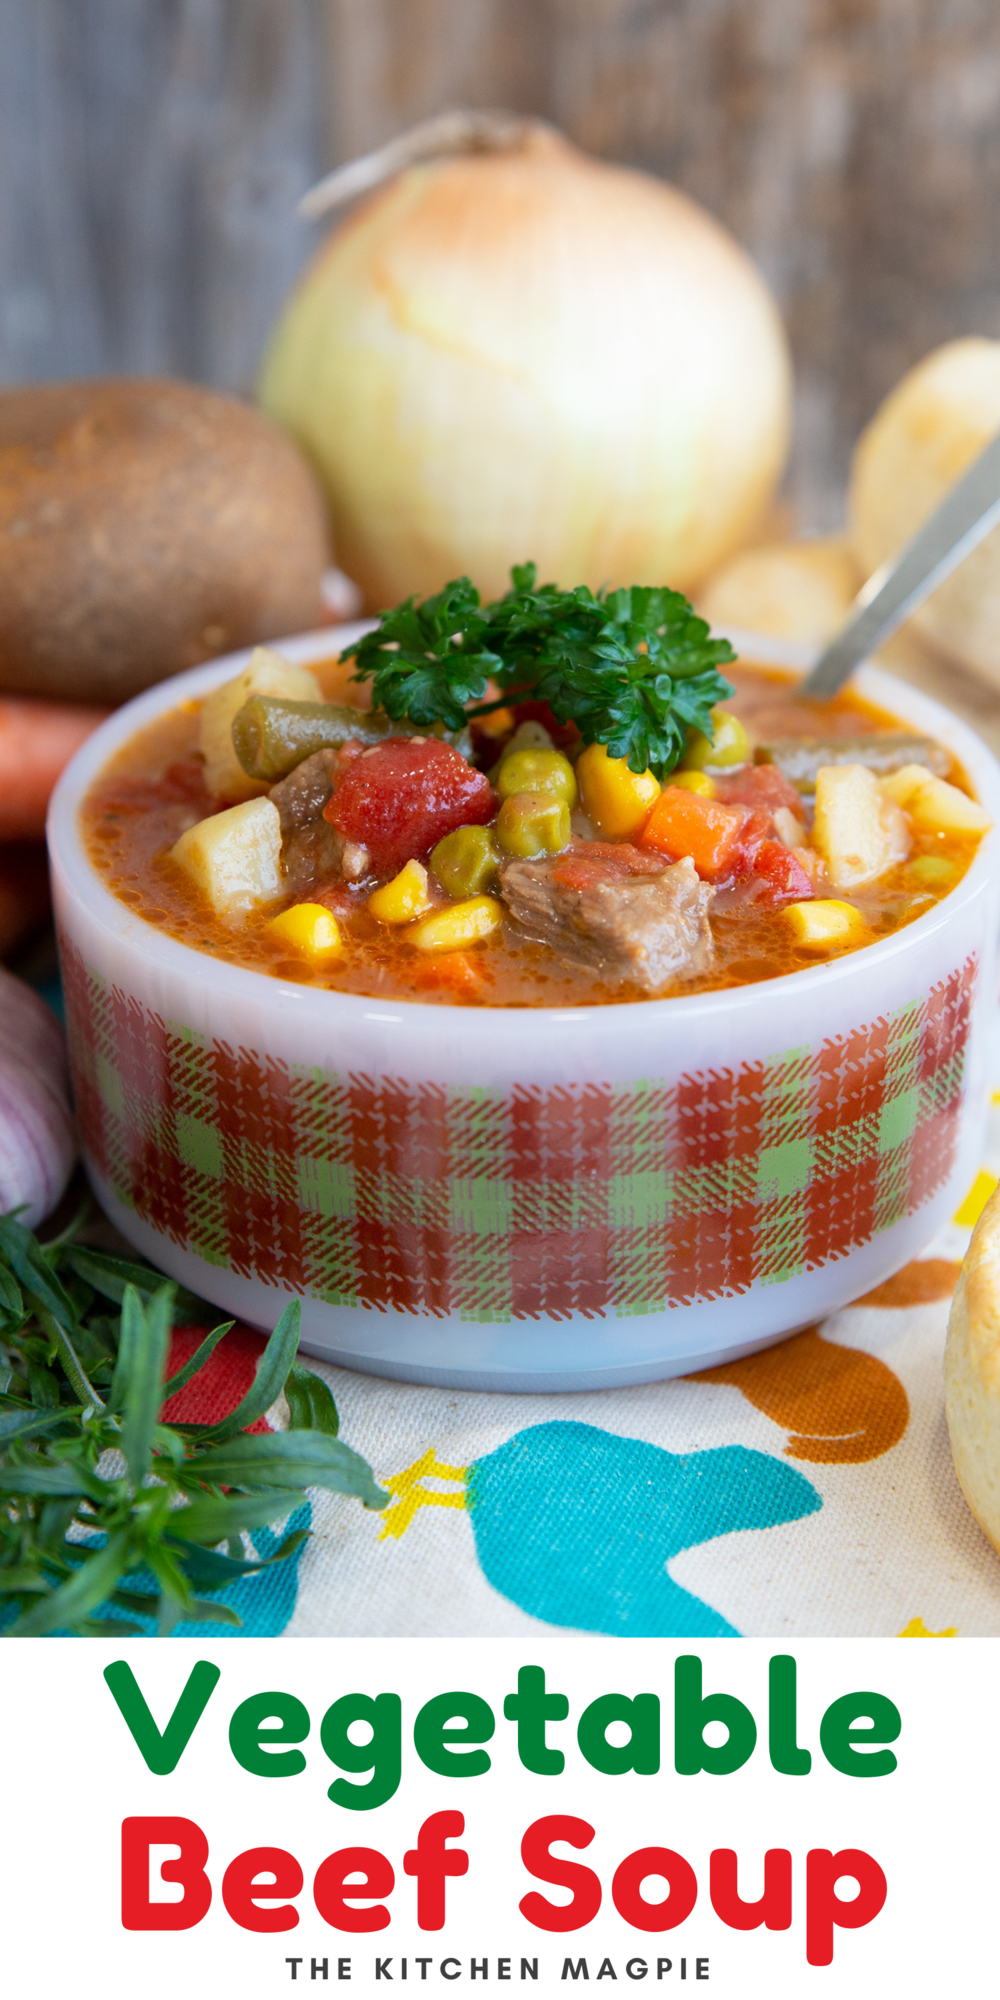 Delicious vegetable beef soup loaded with vegetables and simmered on the stovetop that makes for a hearty dinner or lunch!